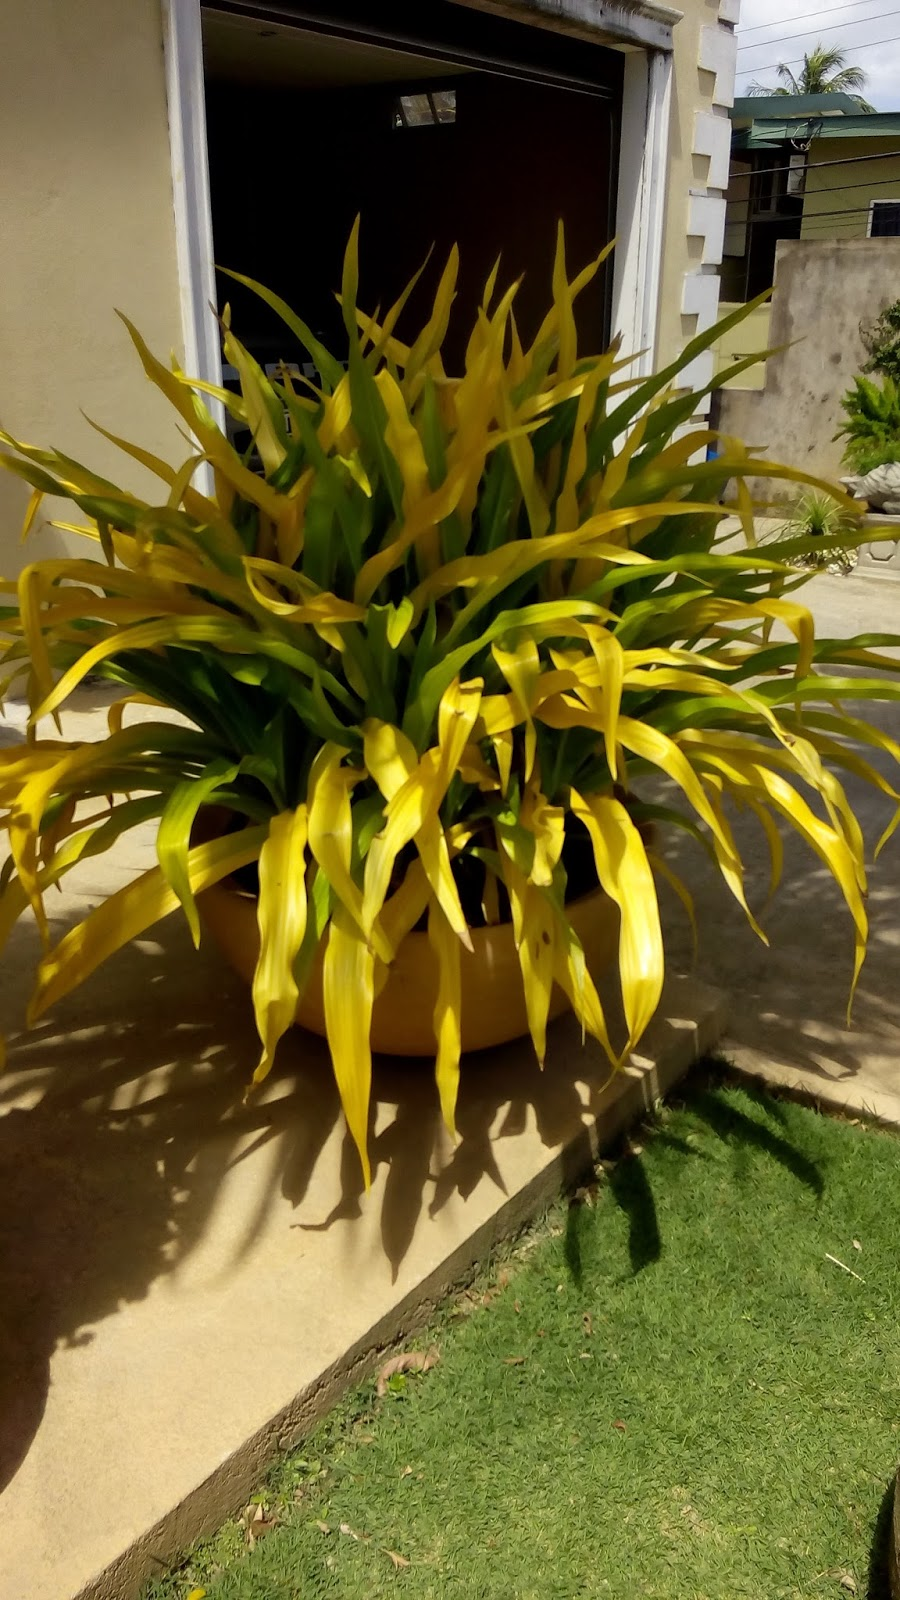 Precious plants trinidad the golden spider lily a lily is a bulbous plant with a large trumpet shaped typically fragrant flowers on a tall slender stem this plant hardly fits the description of a lily izmirmasajfo